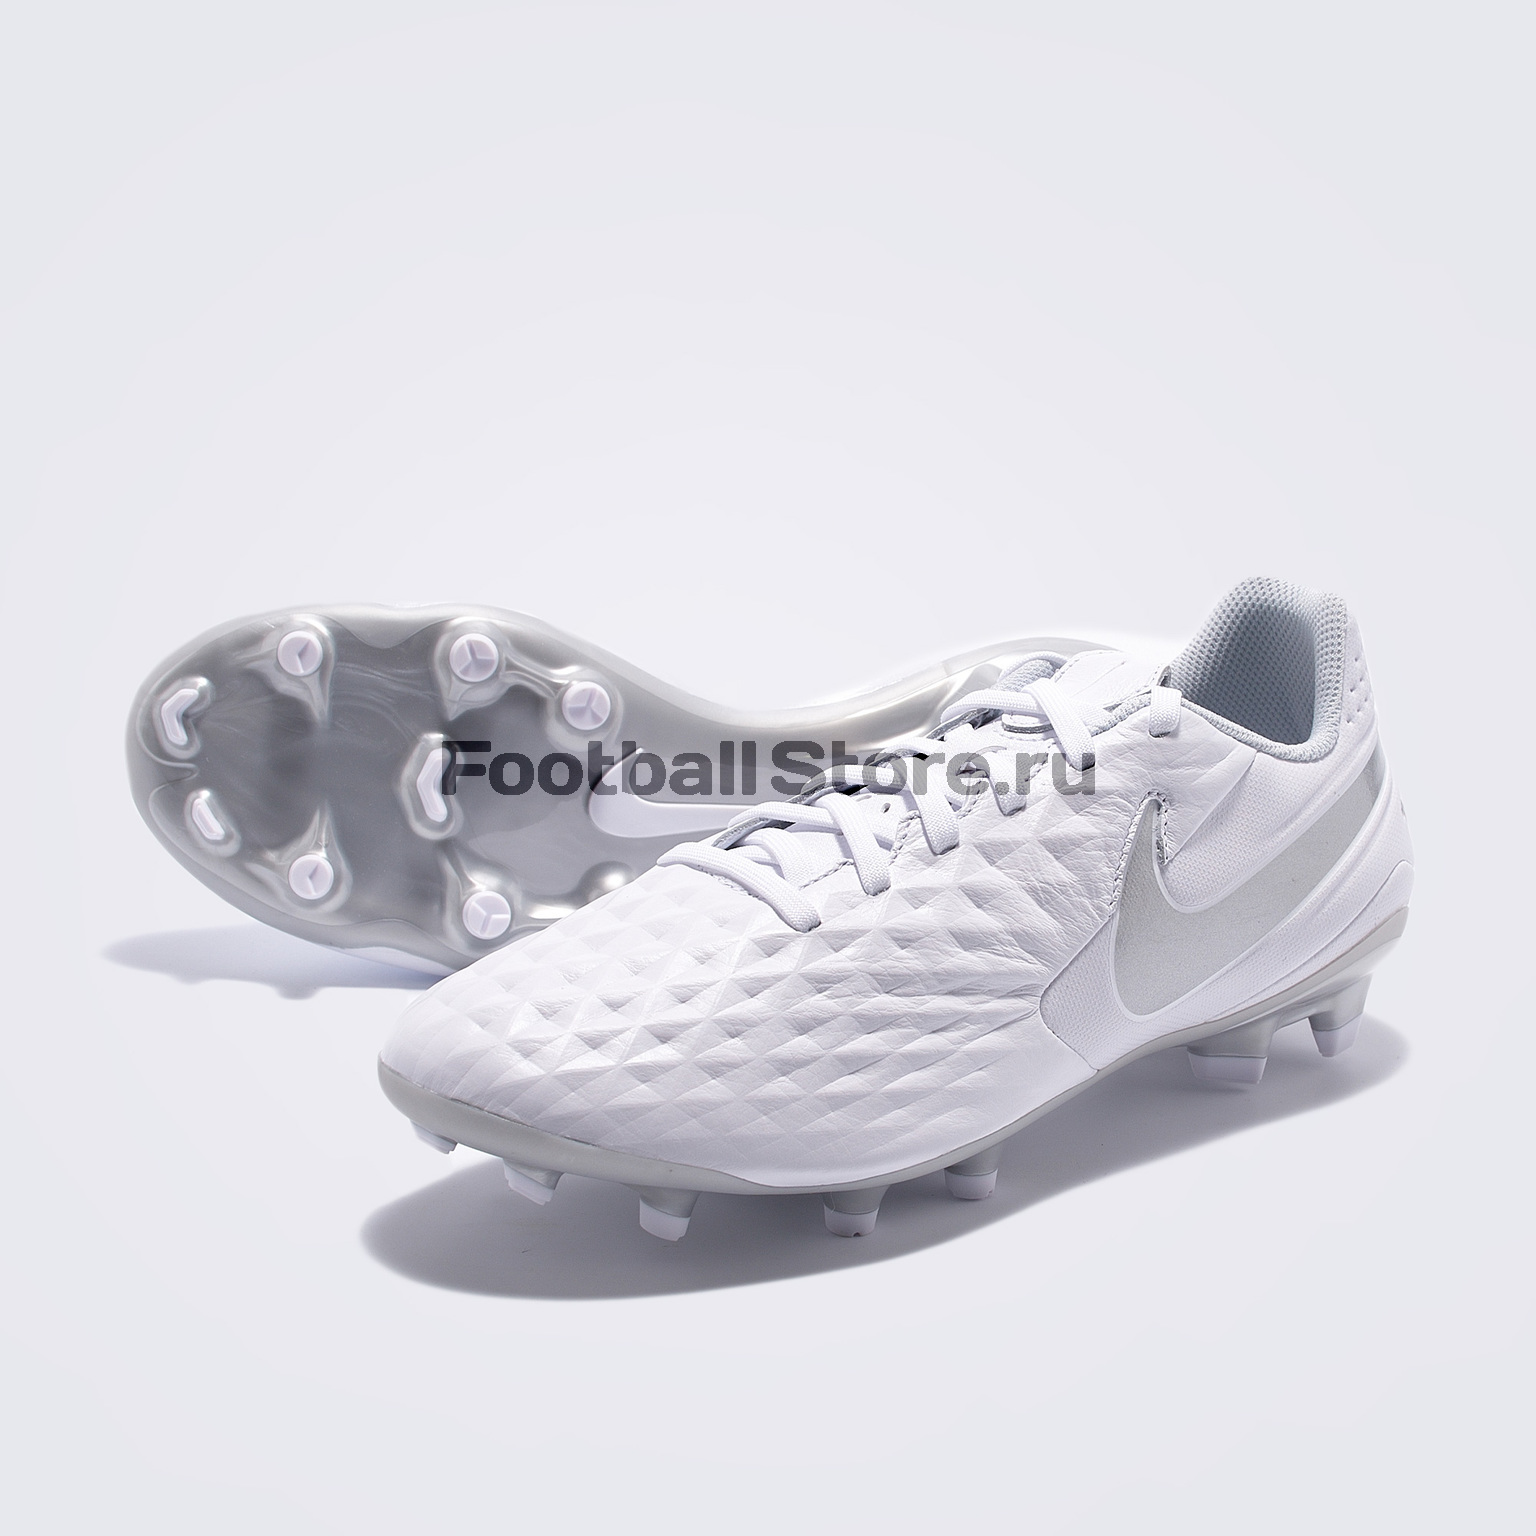 Фото - Бутсы Nike Legend 8 Academy FG/MG AT5292-100 бутсы nike legend 7 academy fg ah7242 118